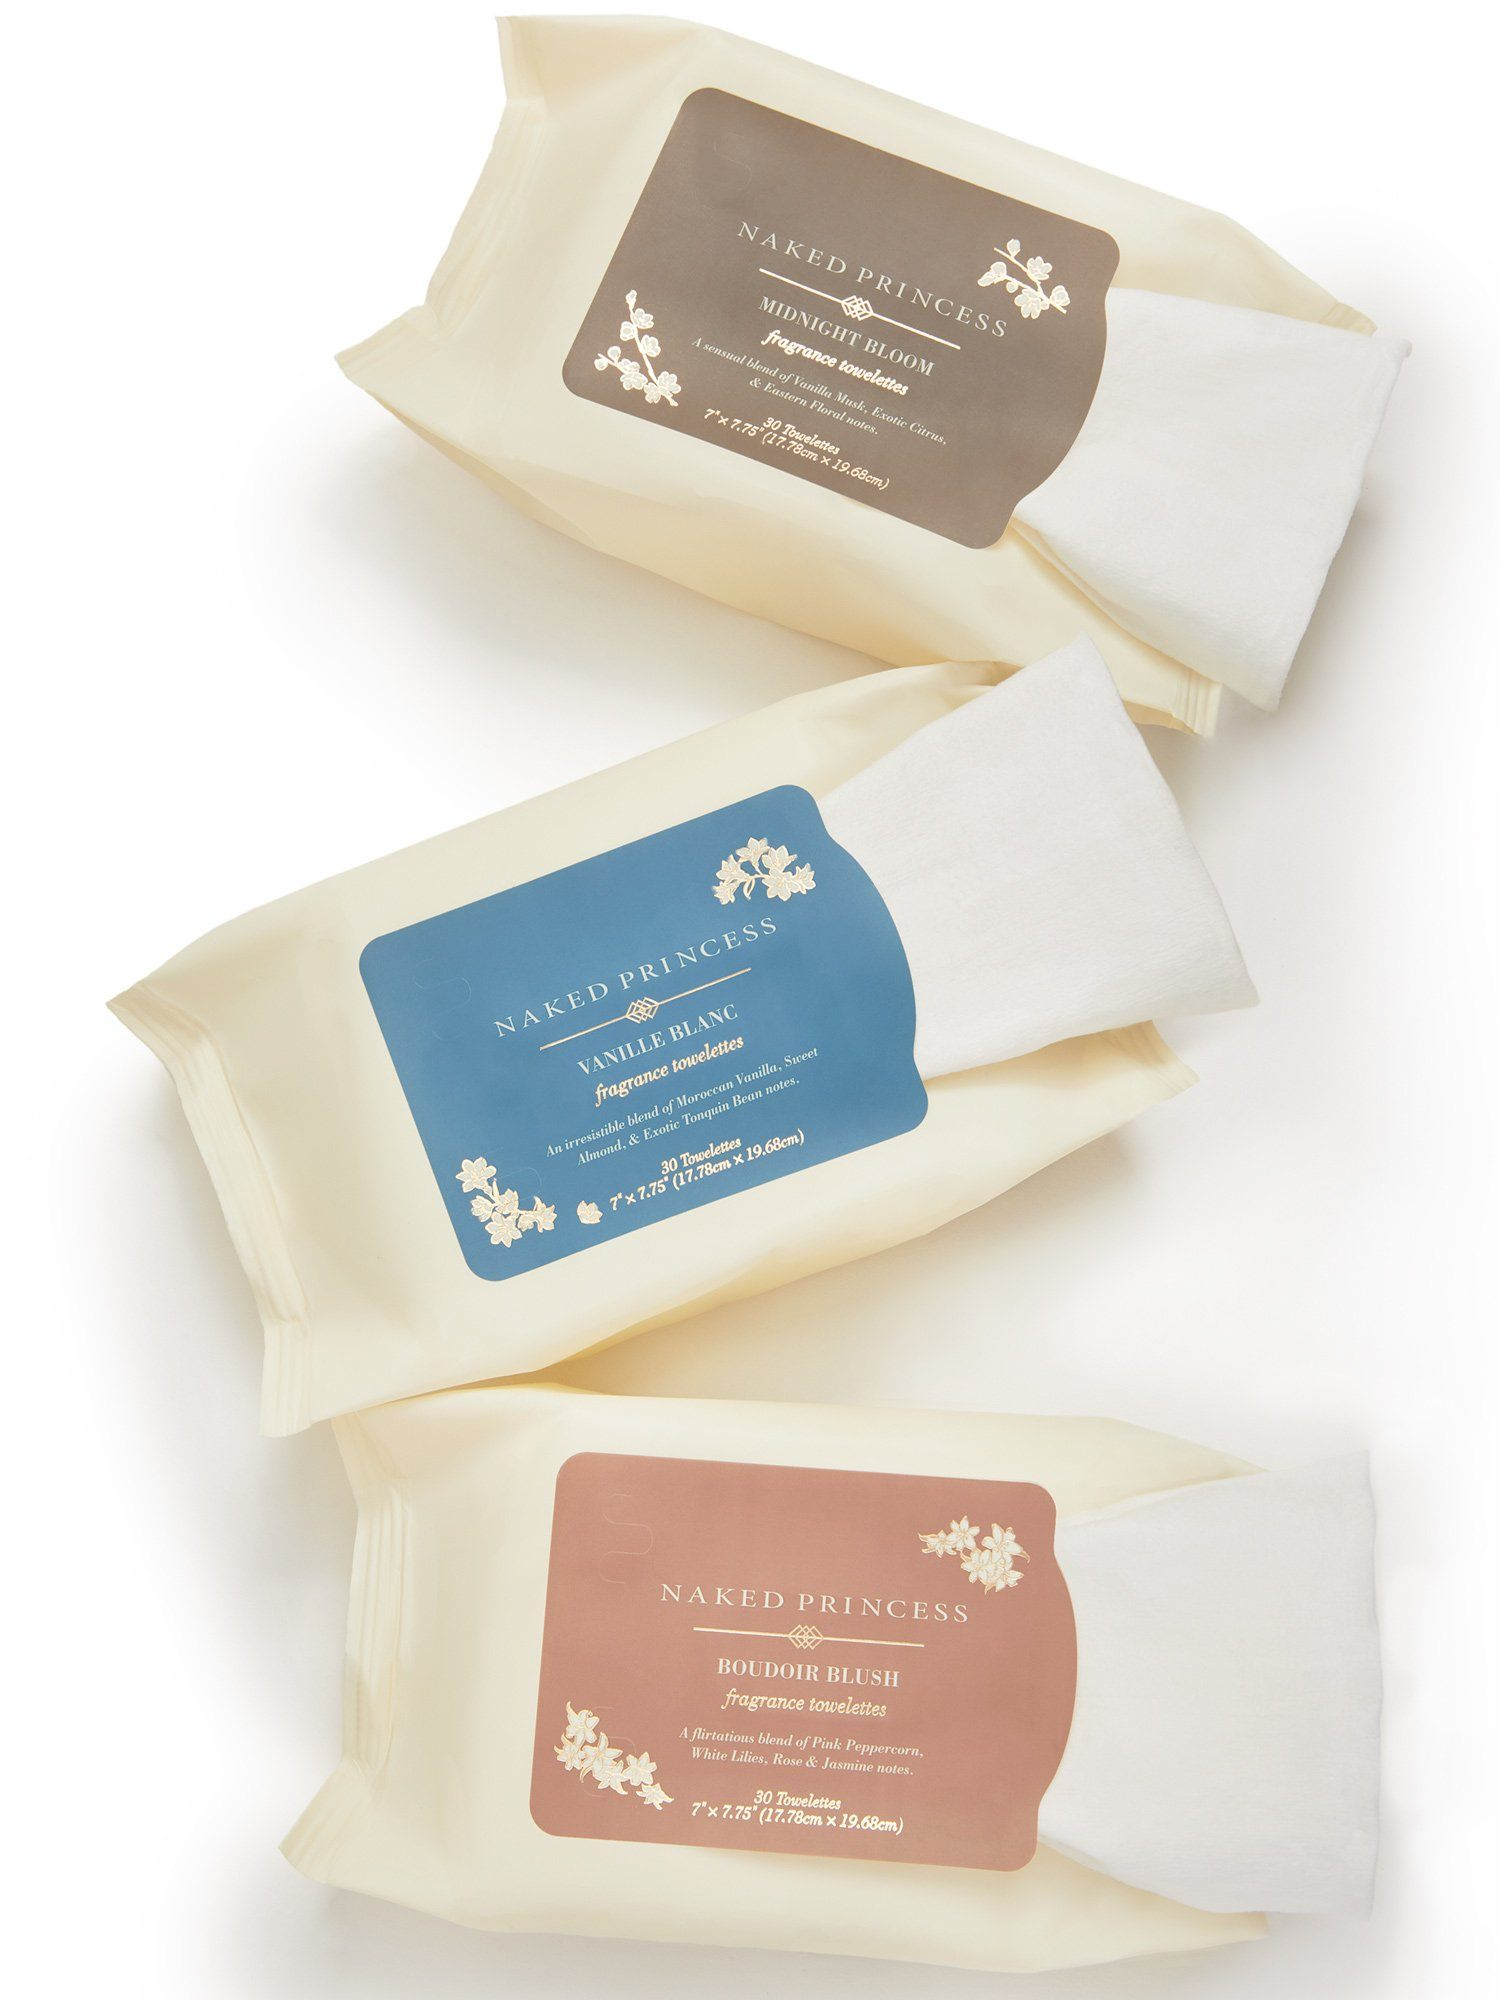 Fragrance Towelettes - Vanille Blanc Cleanse by Le Marché by NP